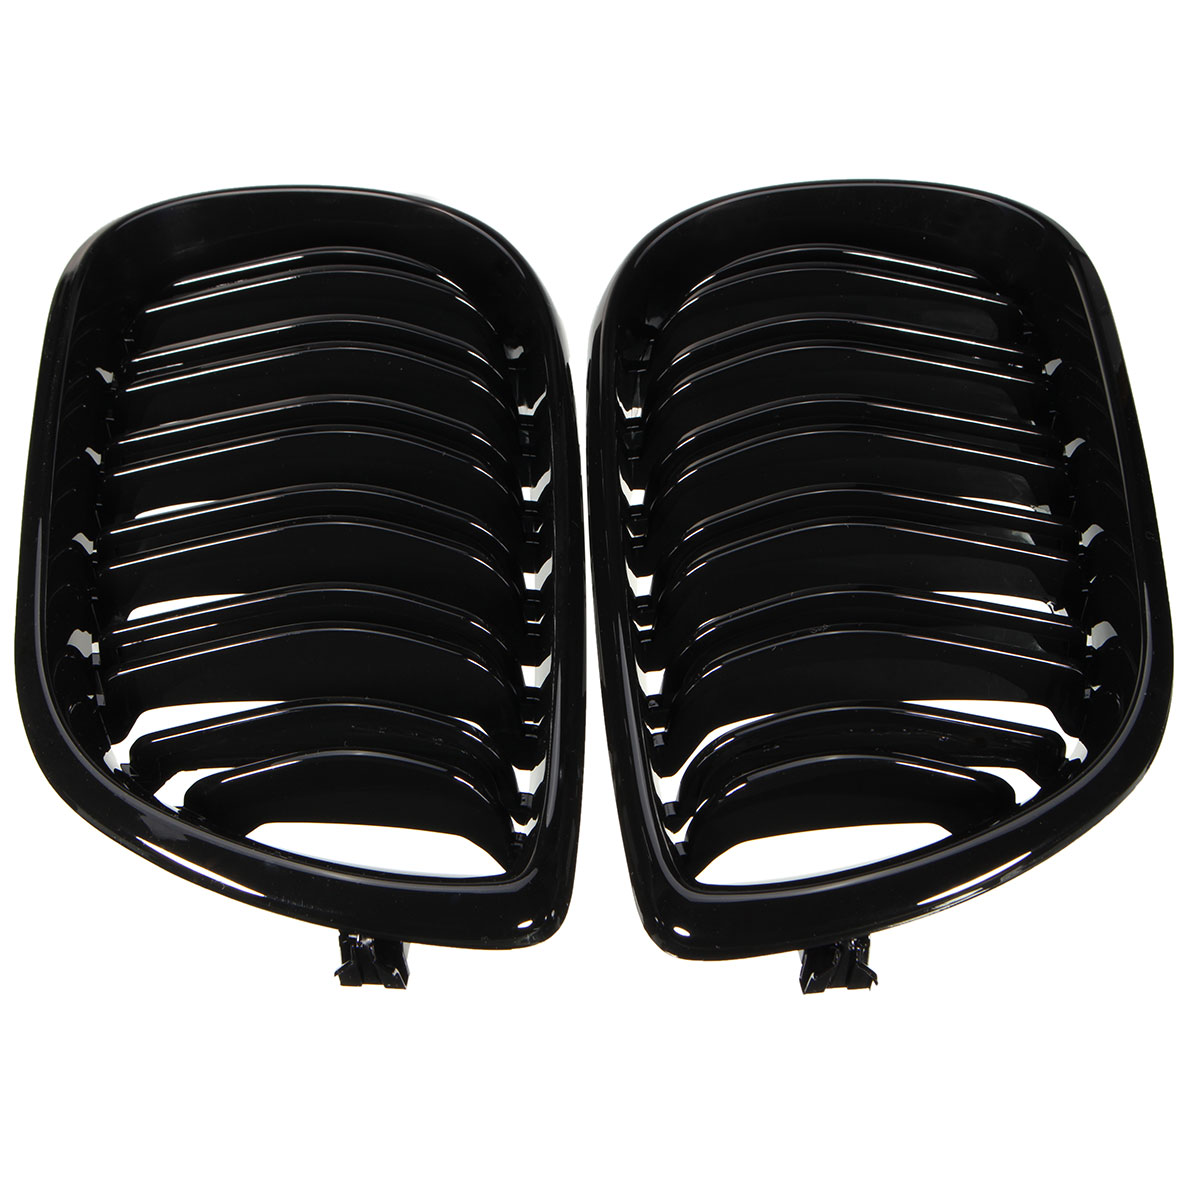 Double Line Grille Gloss Black Front Grills For BMW E46 4-DOOR 3 Series 02-04